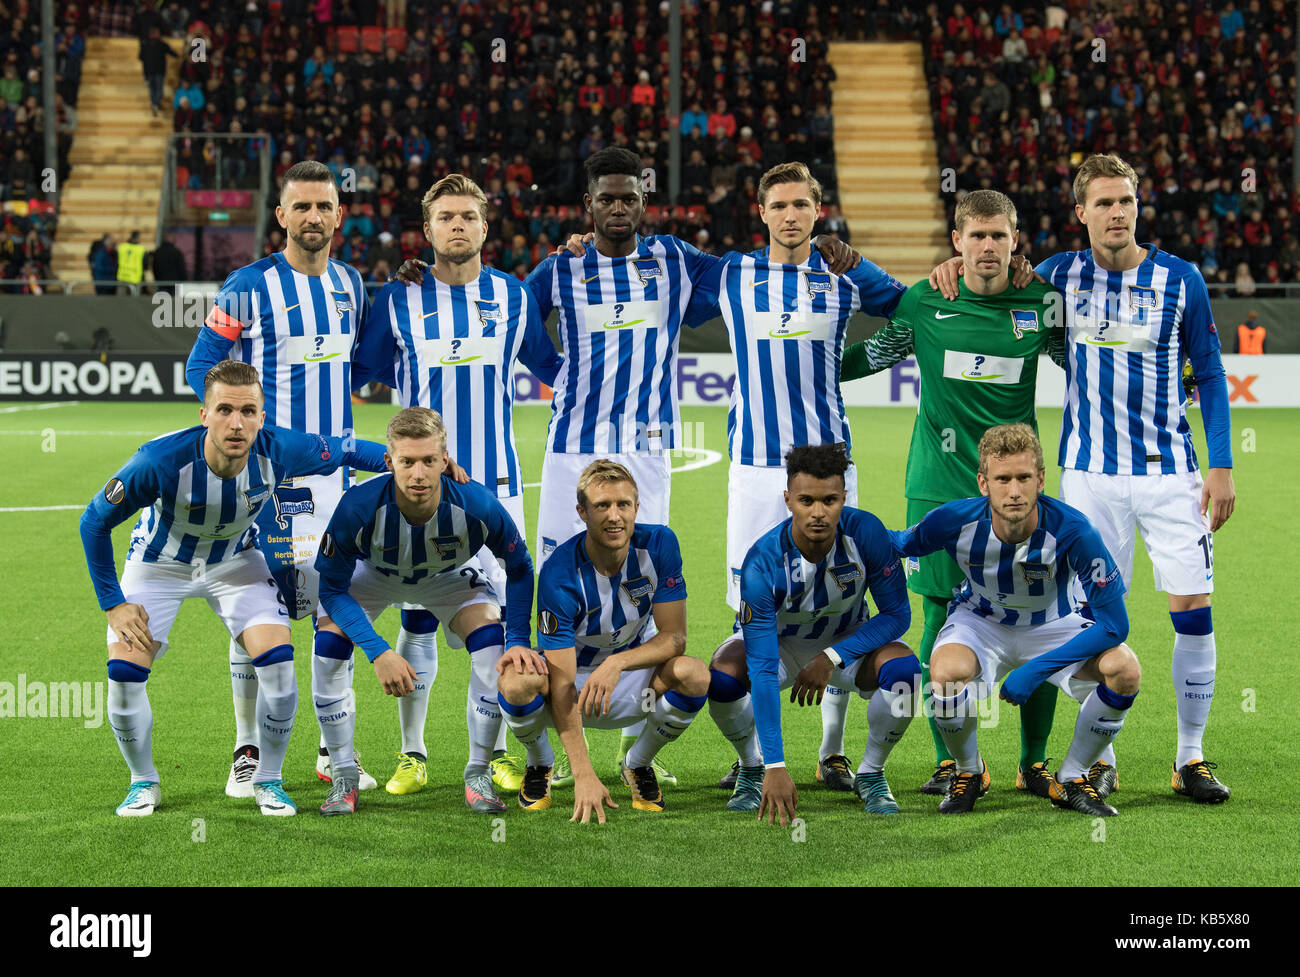 Ostersund, Sweden. 28th Sep, 2017. Hertha's players pose for a team picture before the Europa League match between - Stock Image